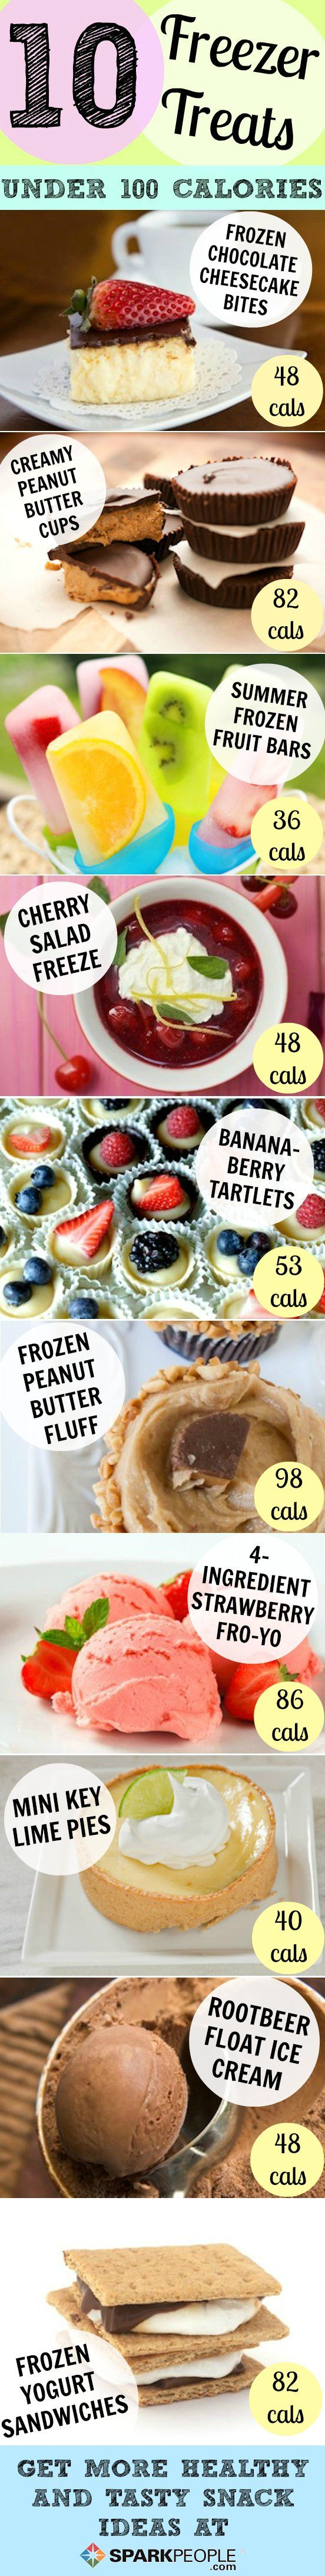 10 Freezer Treats under 100 Calories  #ResearchAcrossAmerica #Yummy #BeatTheHeat #100Calories